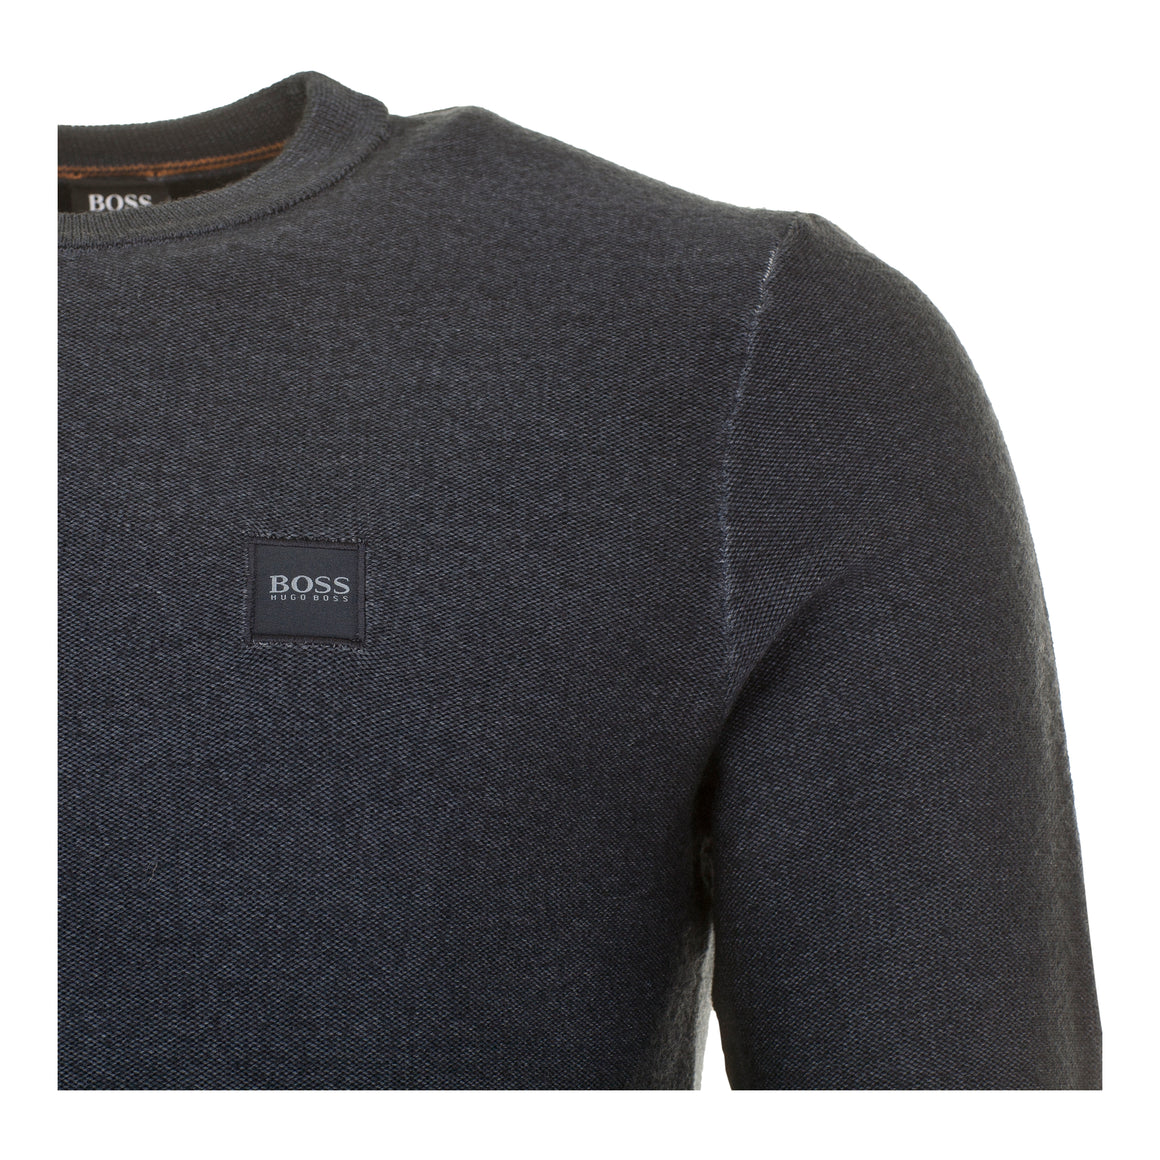 Anitoba Crew Neck Jumper for Men in Navy